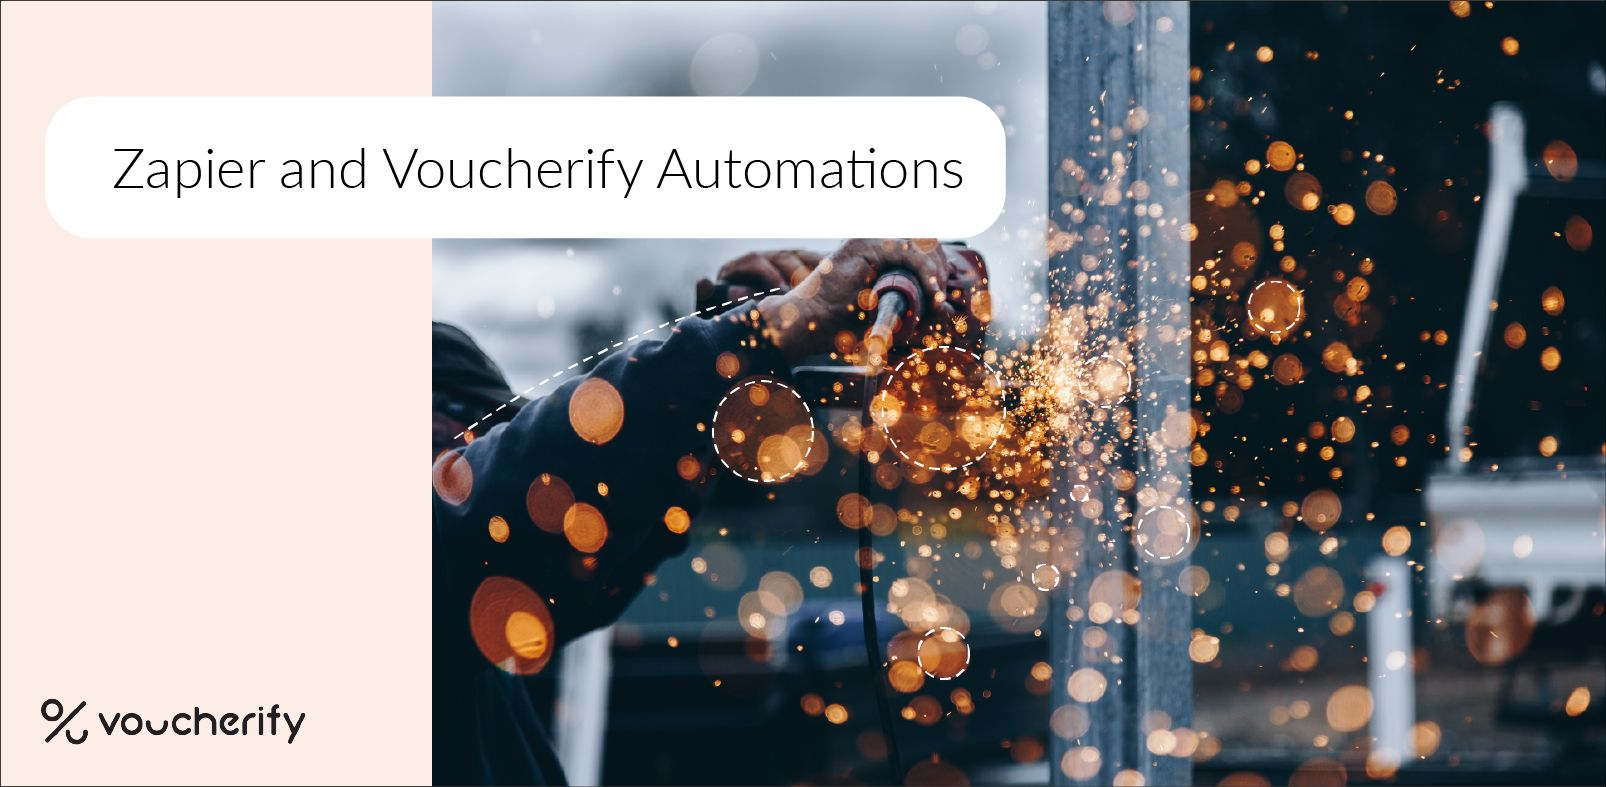 Best promotion marketing integrations for Zapier and Voucherify – learn how to mix apps to automate your promotions and drive ROI.